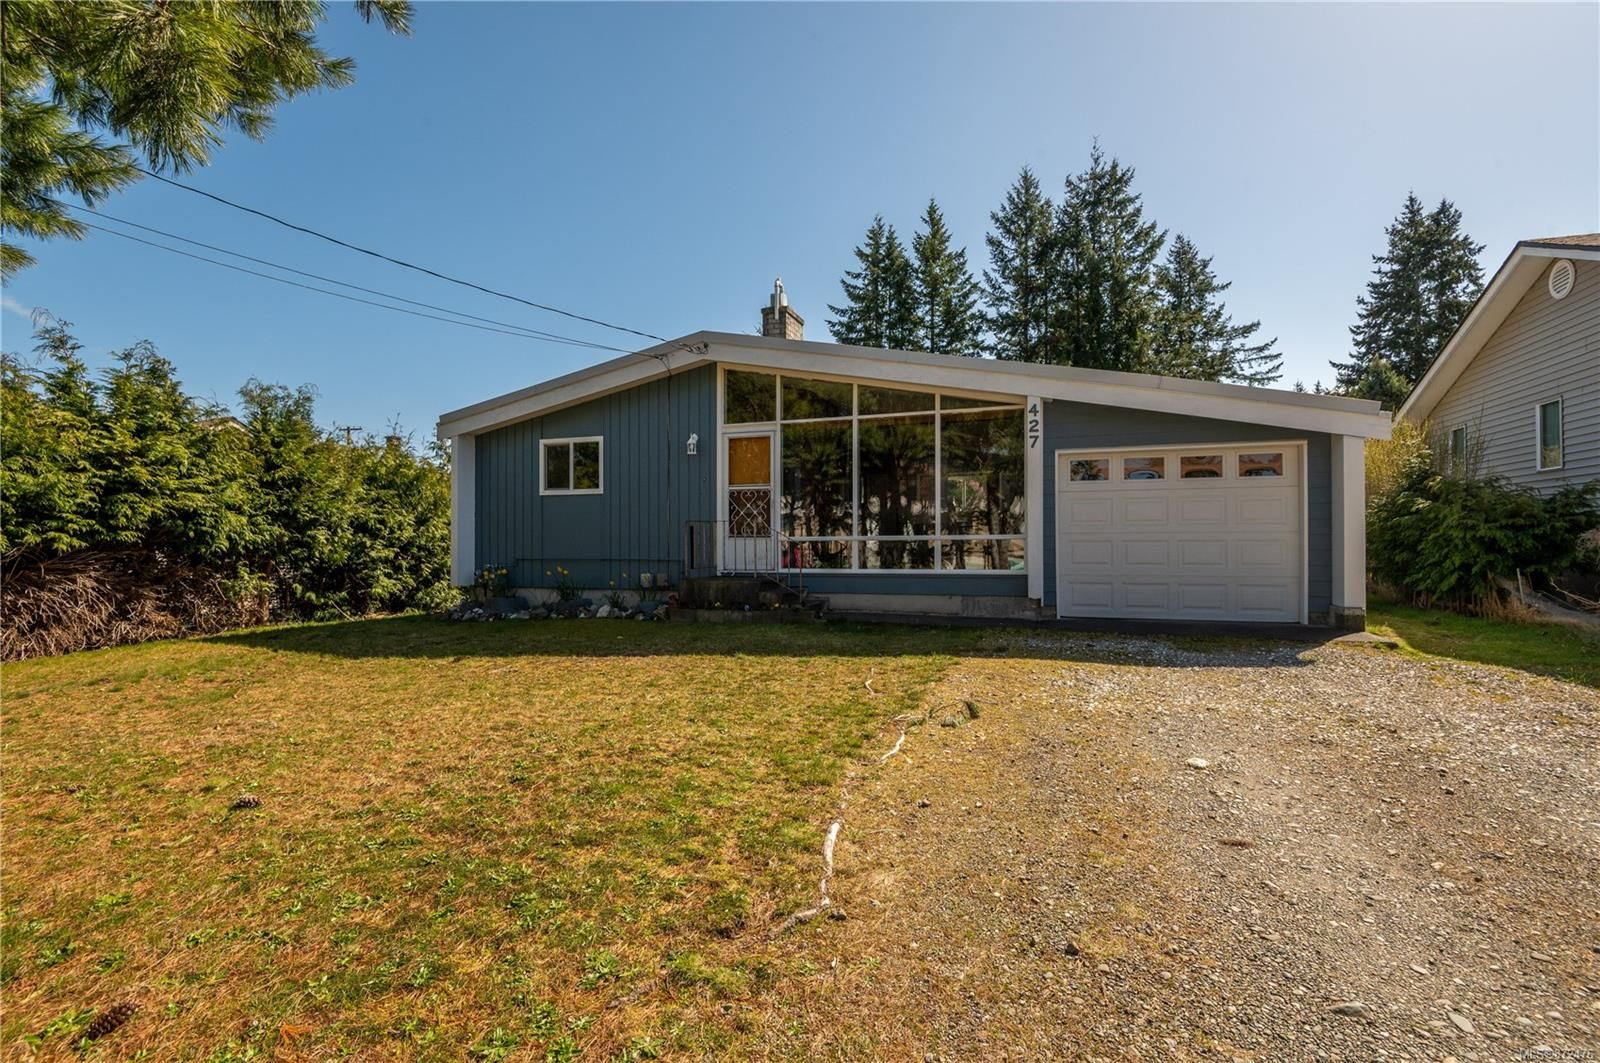 Main Photo: 427 N 5th Ave in : CR Campbell River Central House for sale (Campbell River)  : MLS®# 872476